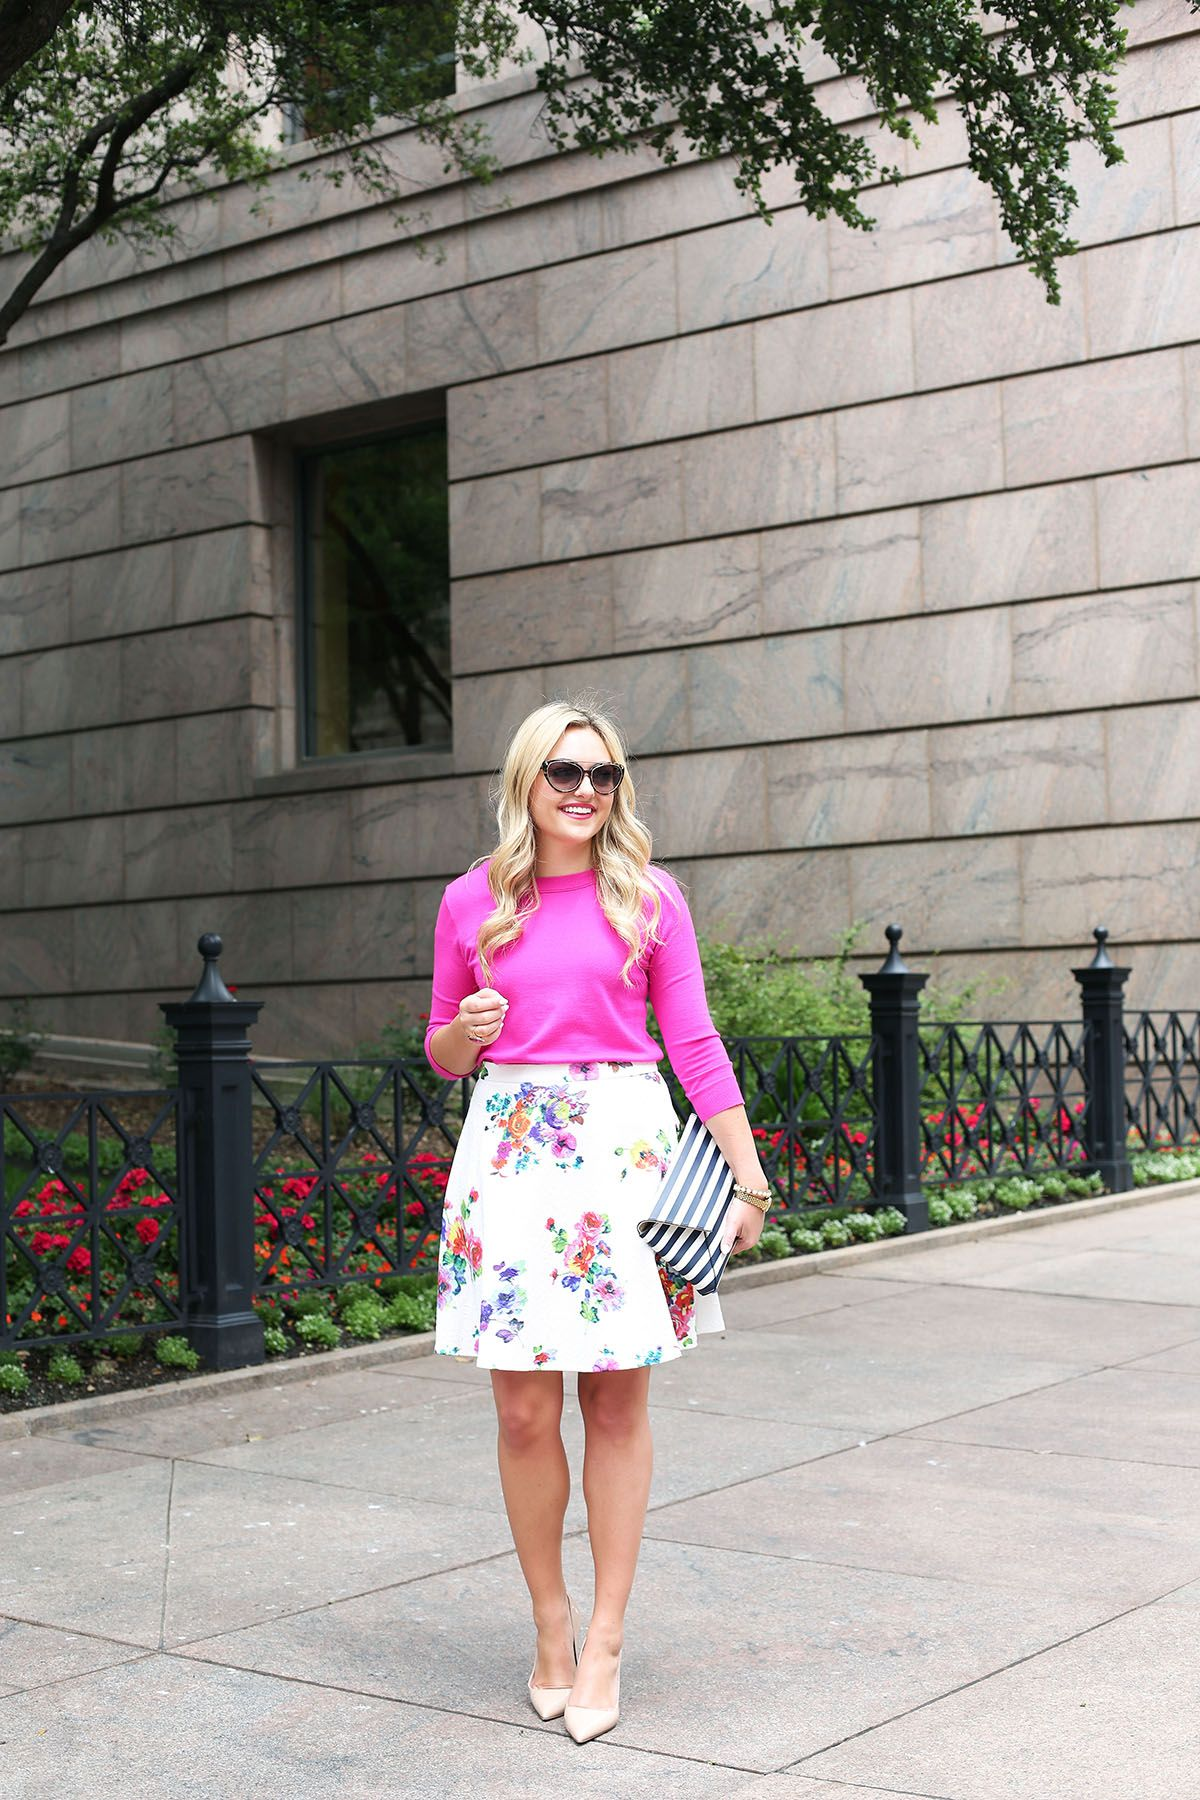 Spring Outfit Bows Sequins Fl Skirt Pink Sweater Navy Blue Striped Clutch Kate Spade Pumps